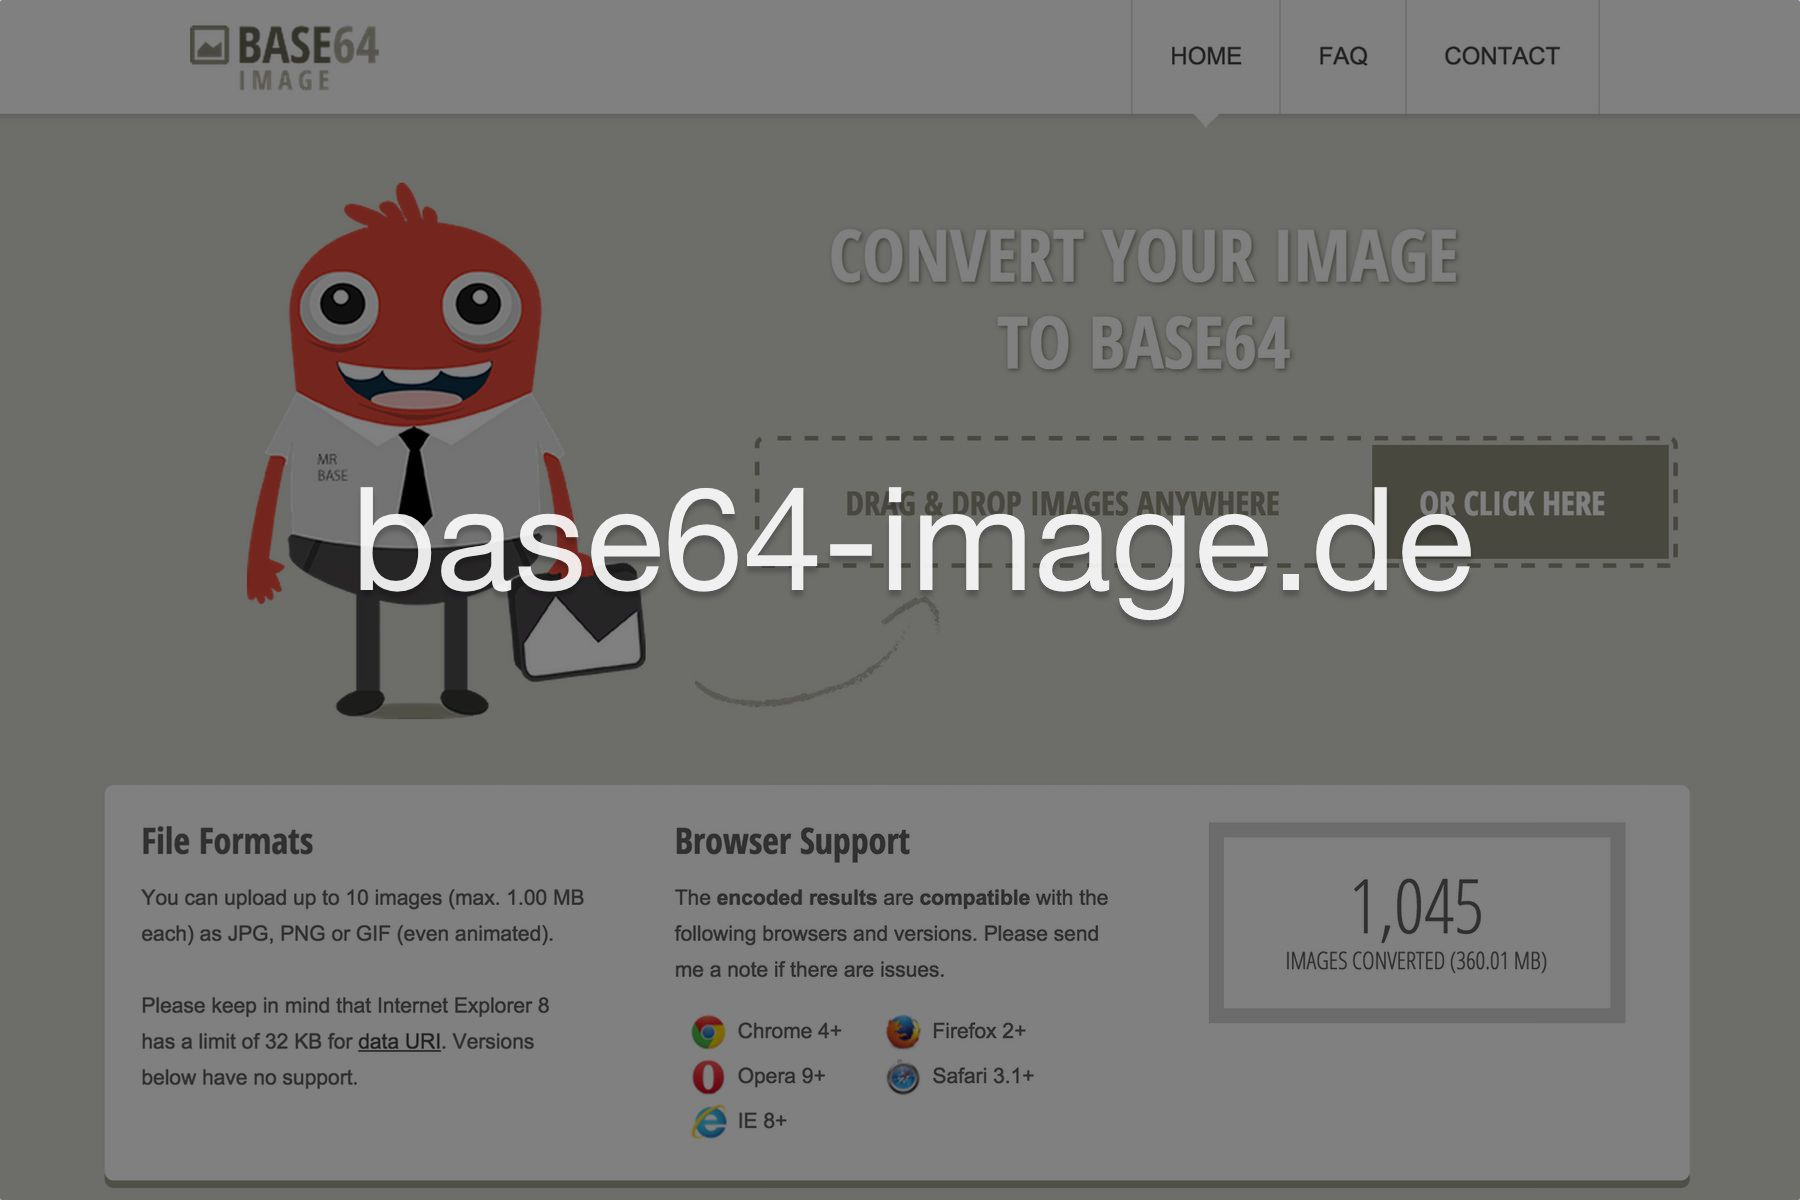 Optimize your images and convert them to base64 online  Drag